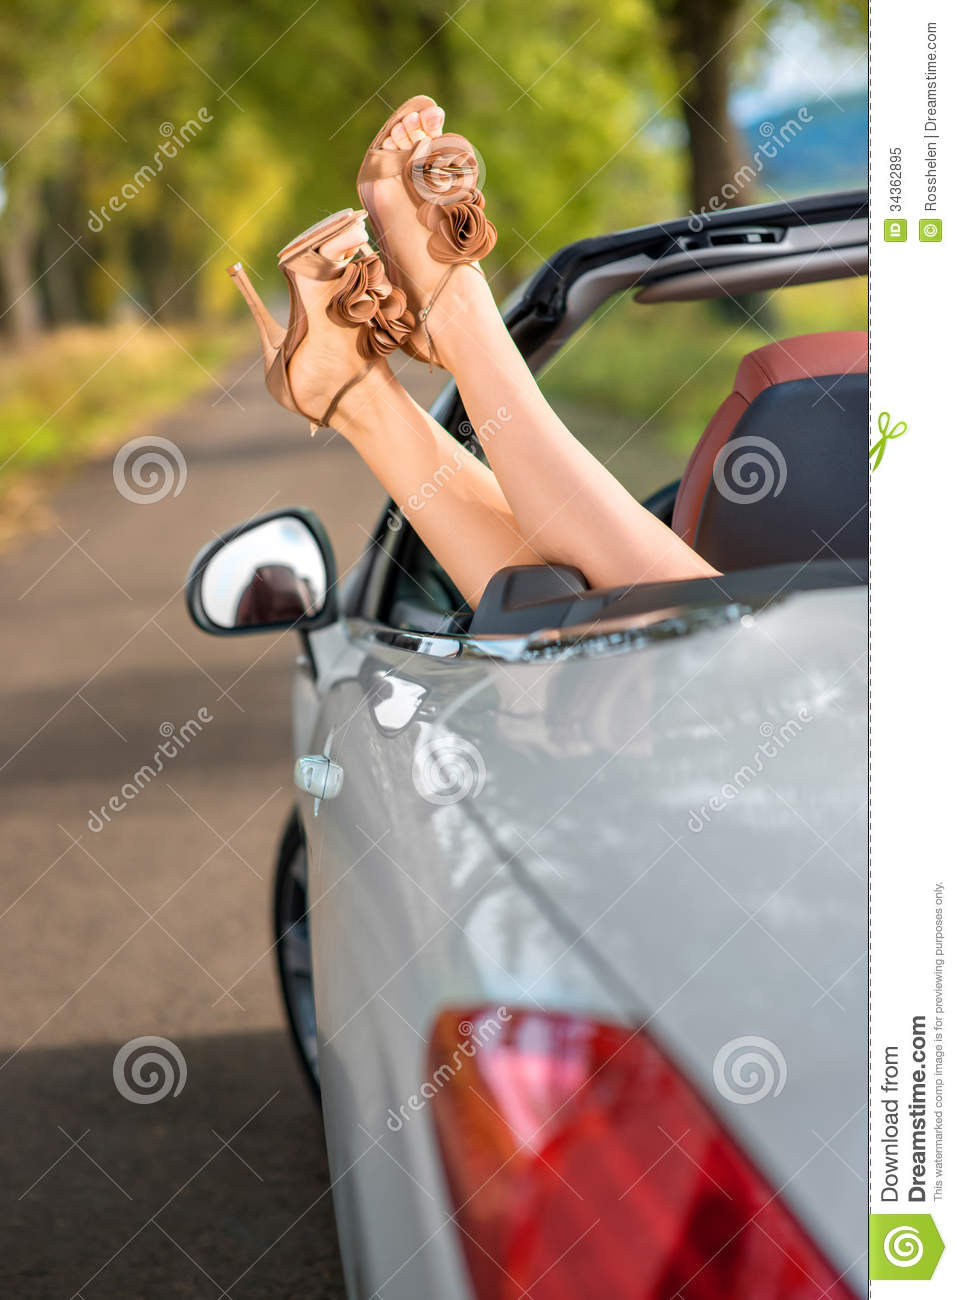 Woman legs in car